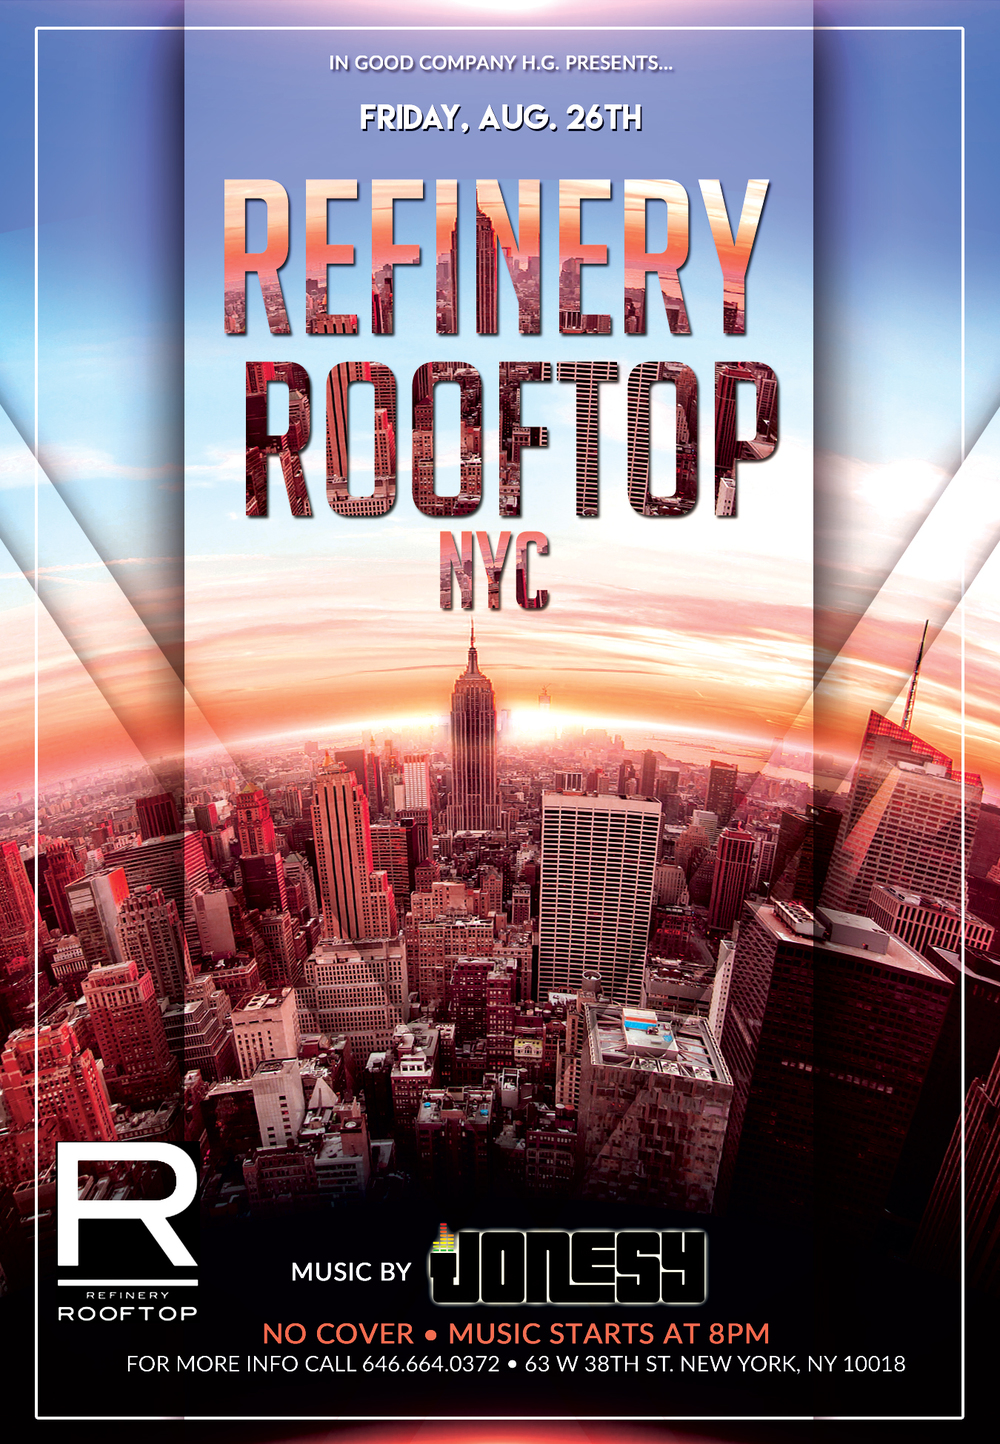 FRIDAY, AUGUST 26TH JOIN US AT REFINERY ROOFTOP NYC FOR MUSIC BY YOURS TRULY 8PM - CLOSE.  GORGEOUS ROOFTOP VIEWS OF THE EMPIRE STATE BUILDING AND NYC SKYLINE + TOP SHELF DRINKS + GREAT MUSIC.  NO COVER, DRESS TO IMPRES.